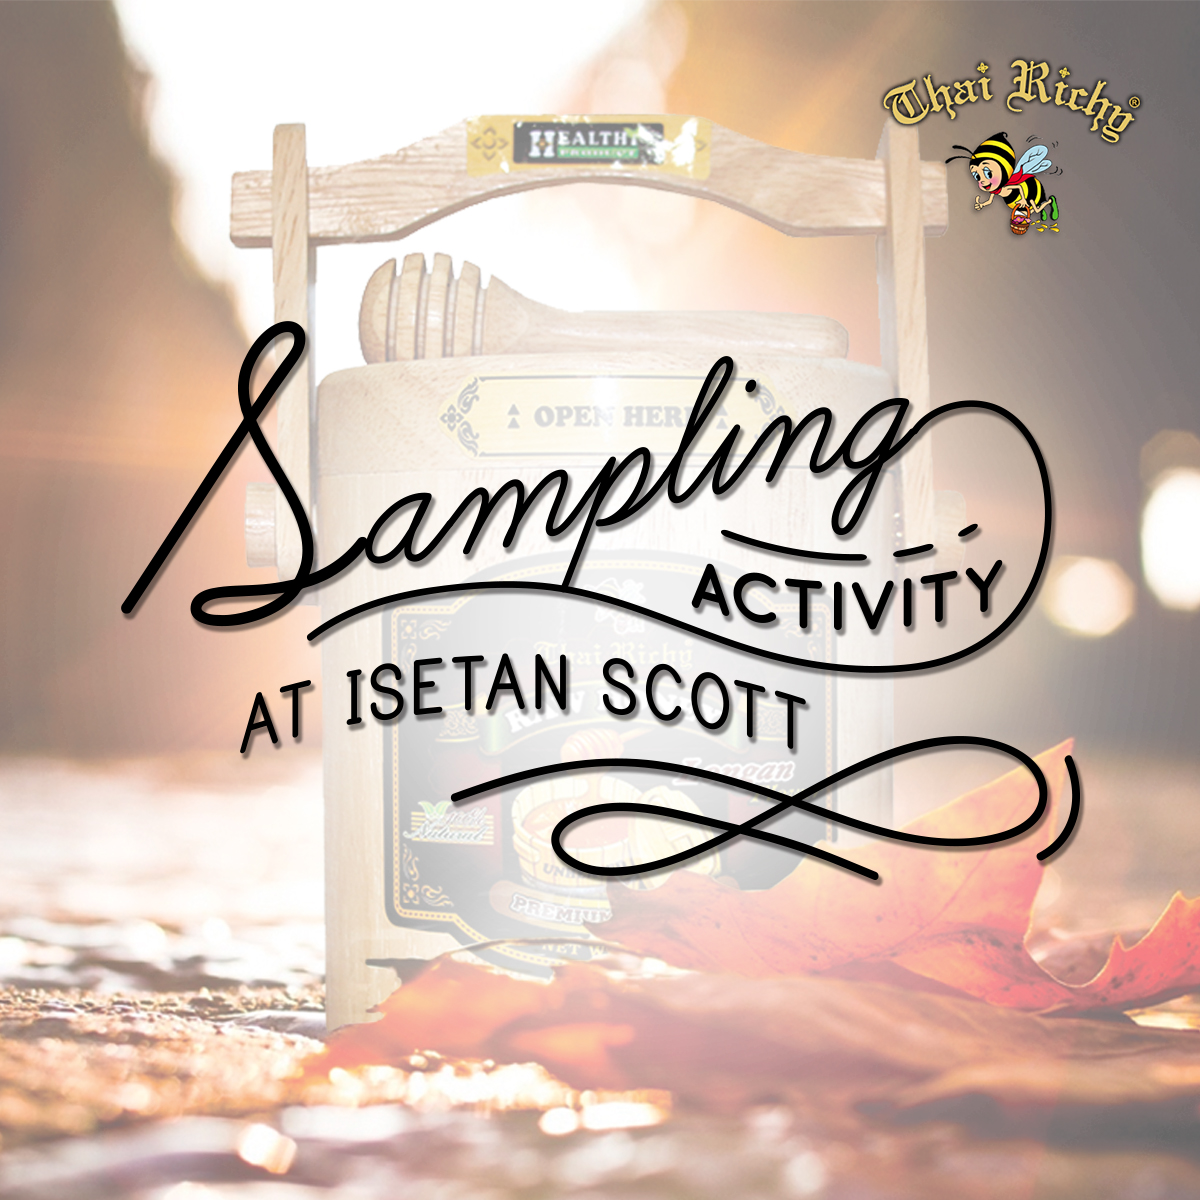 Thai Richy Sampling Activity at Isetan Scotts